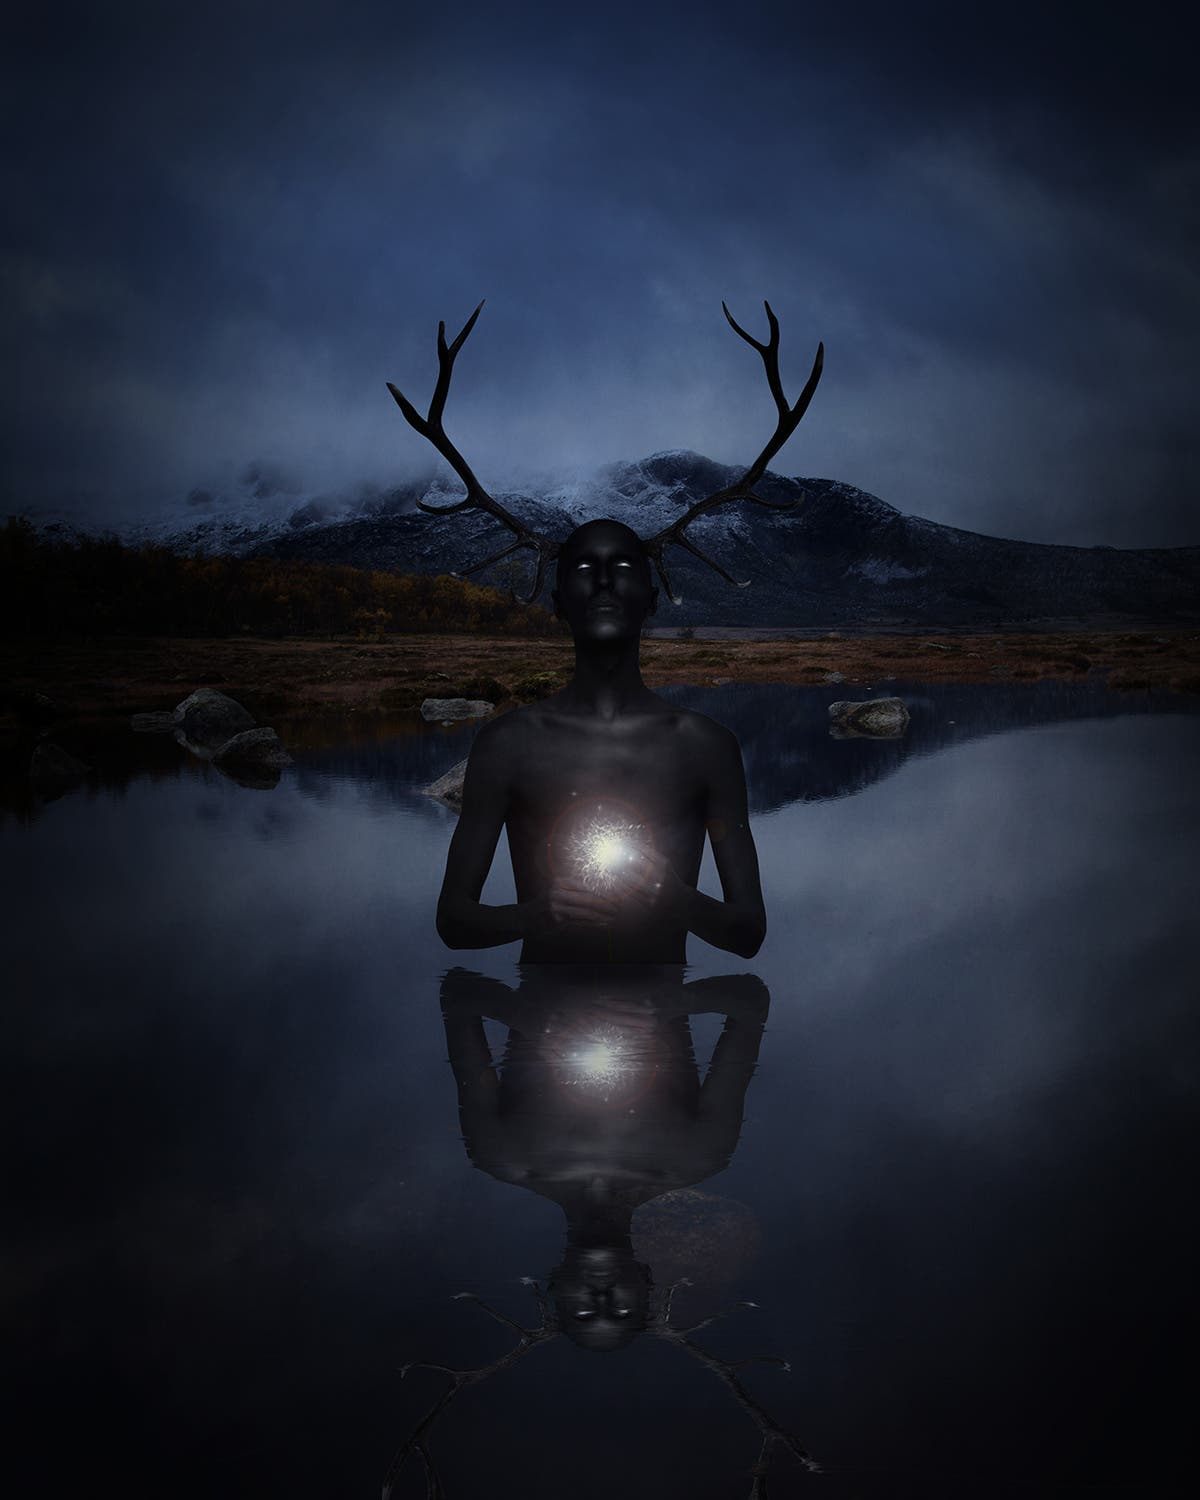 Photo Series Depicts the Myths and Legends of Norway